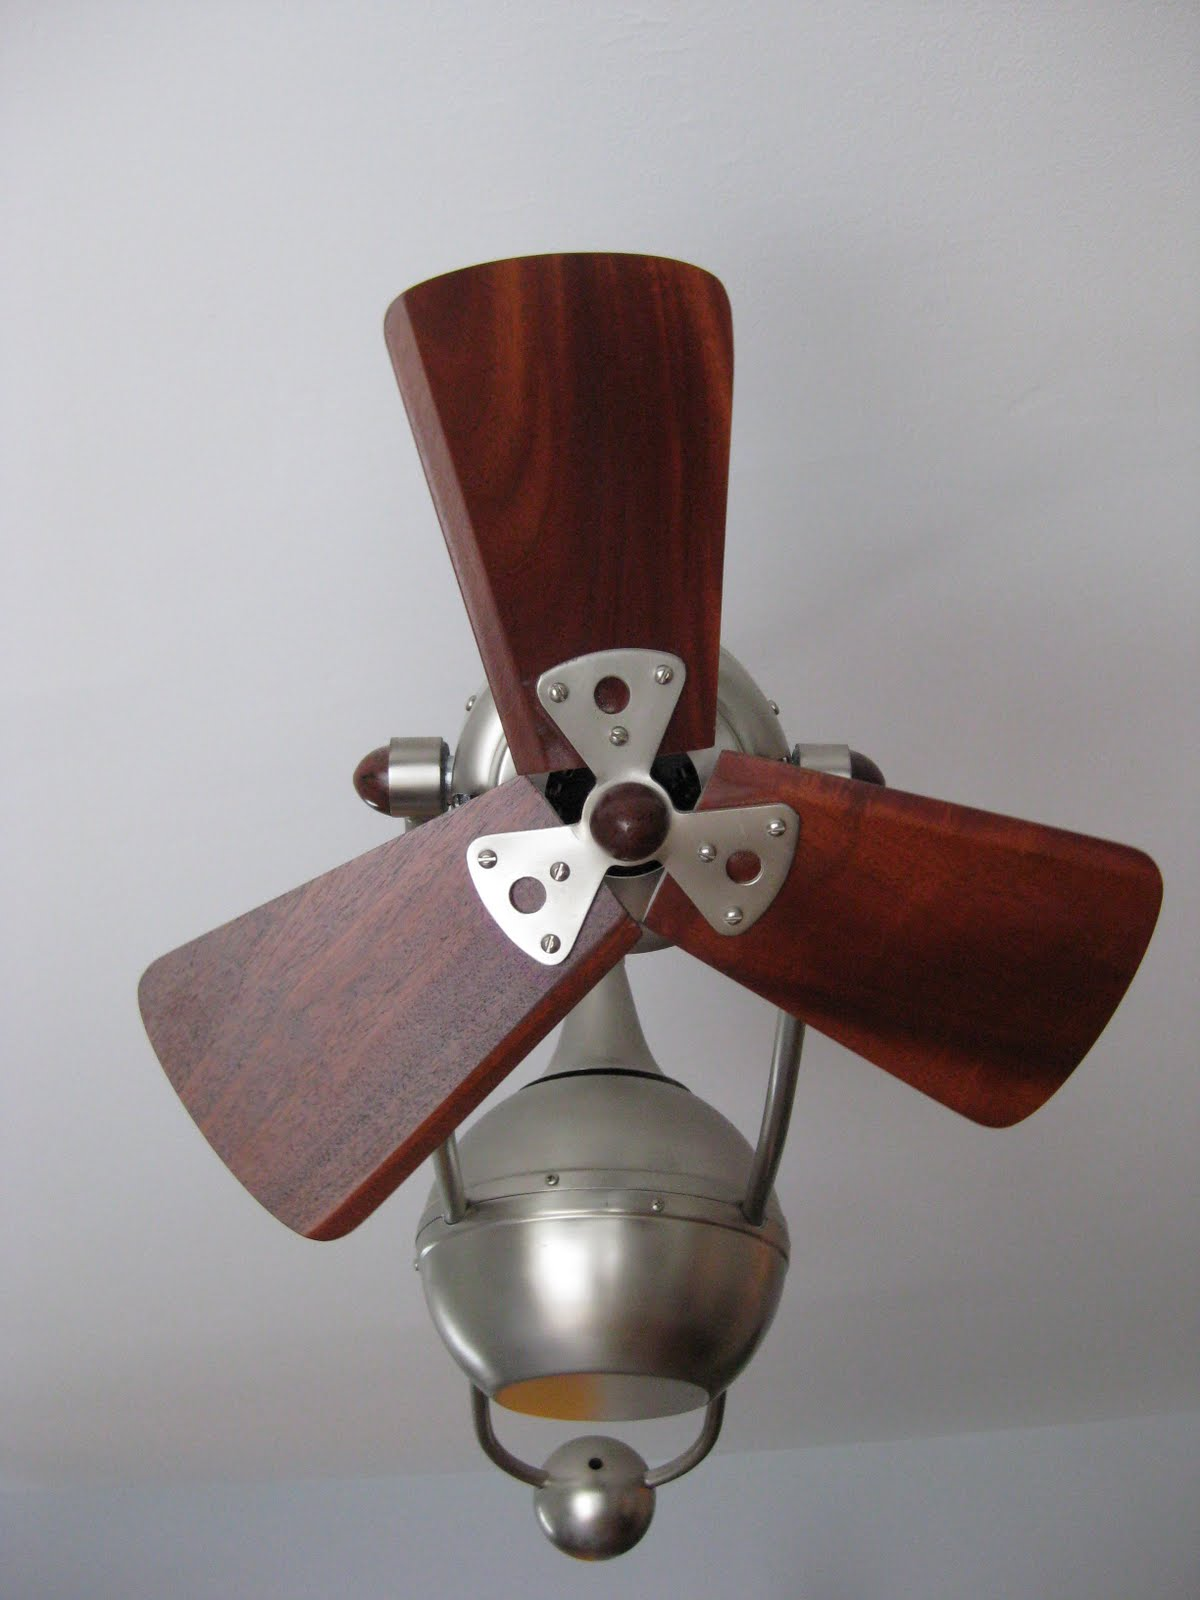 Make Artistic Sense Of Your Living Space With Unique Ceiling Fans: Matthew Gerbar Ceiling Fans